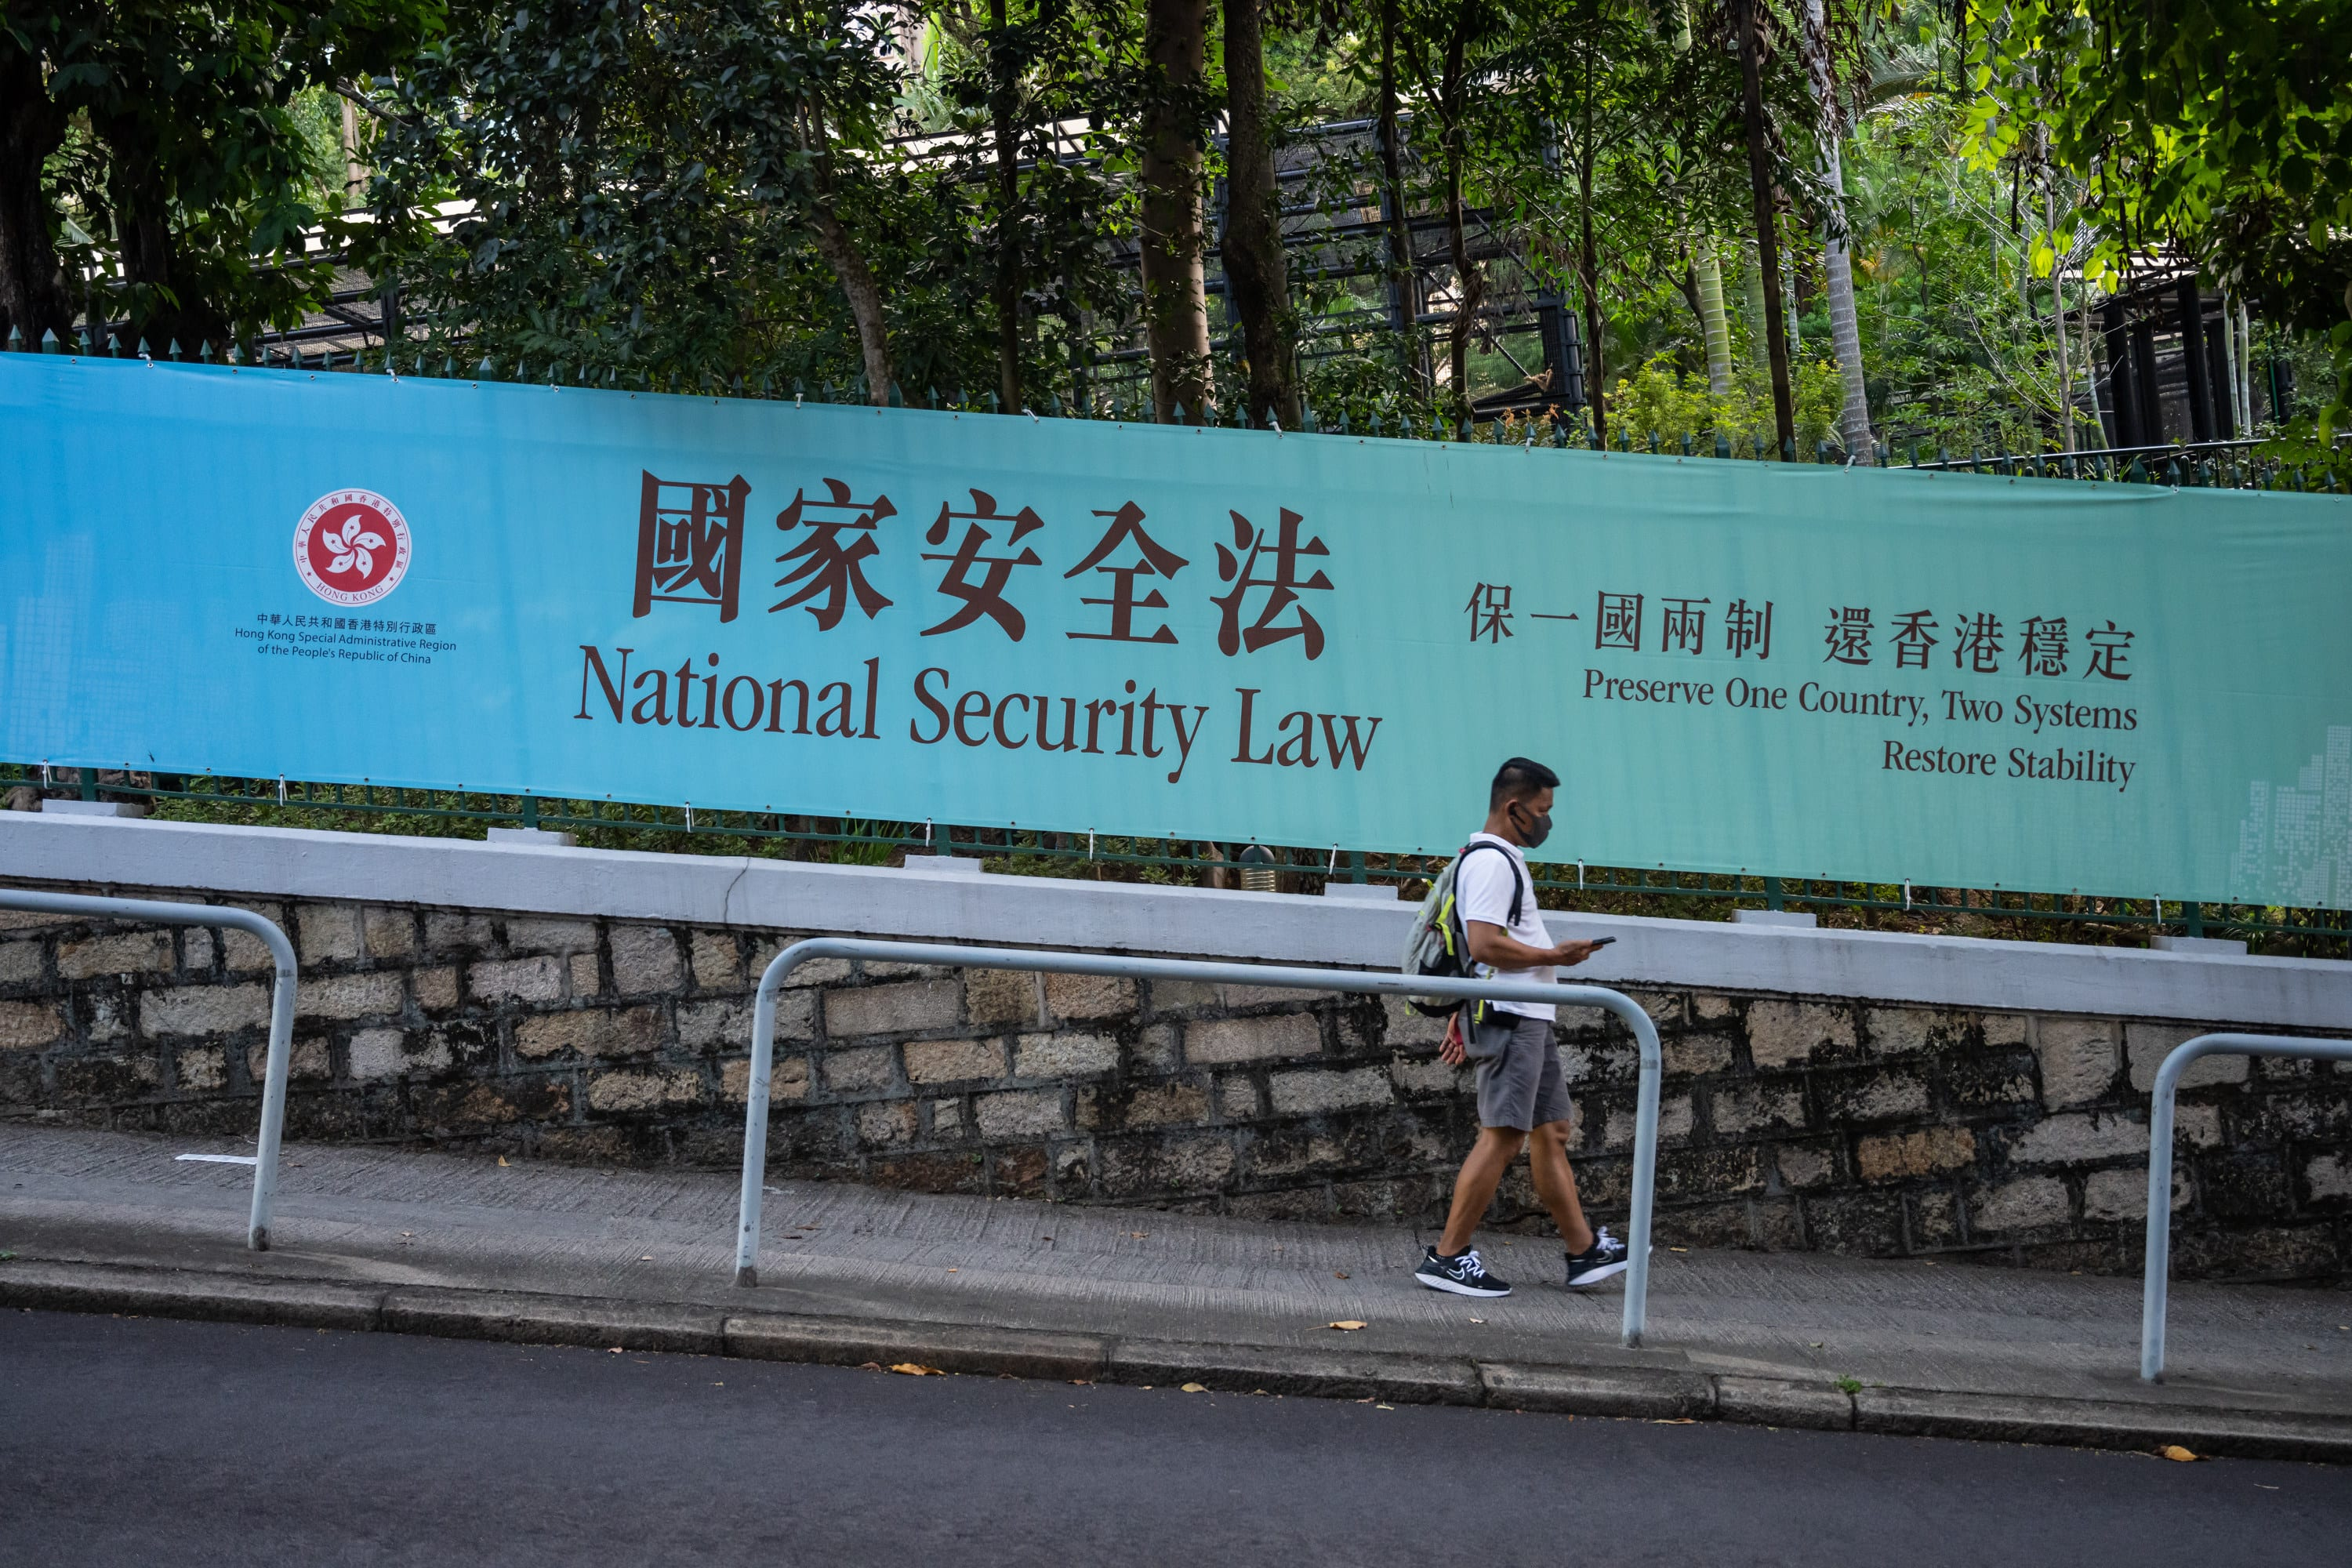 Hong Kong officials 'very disappointed' at Canada's move to suspend extradition pact